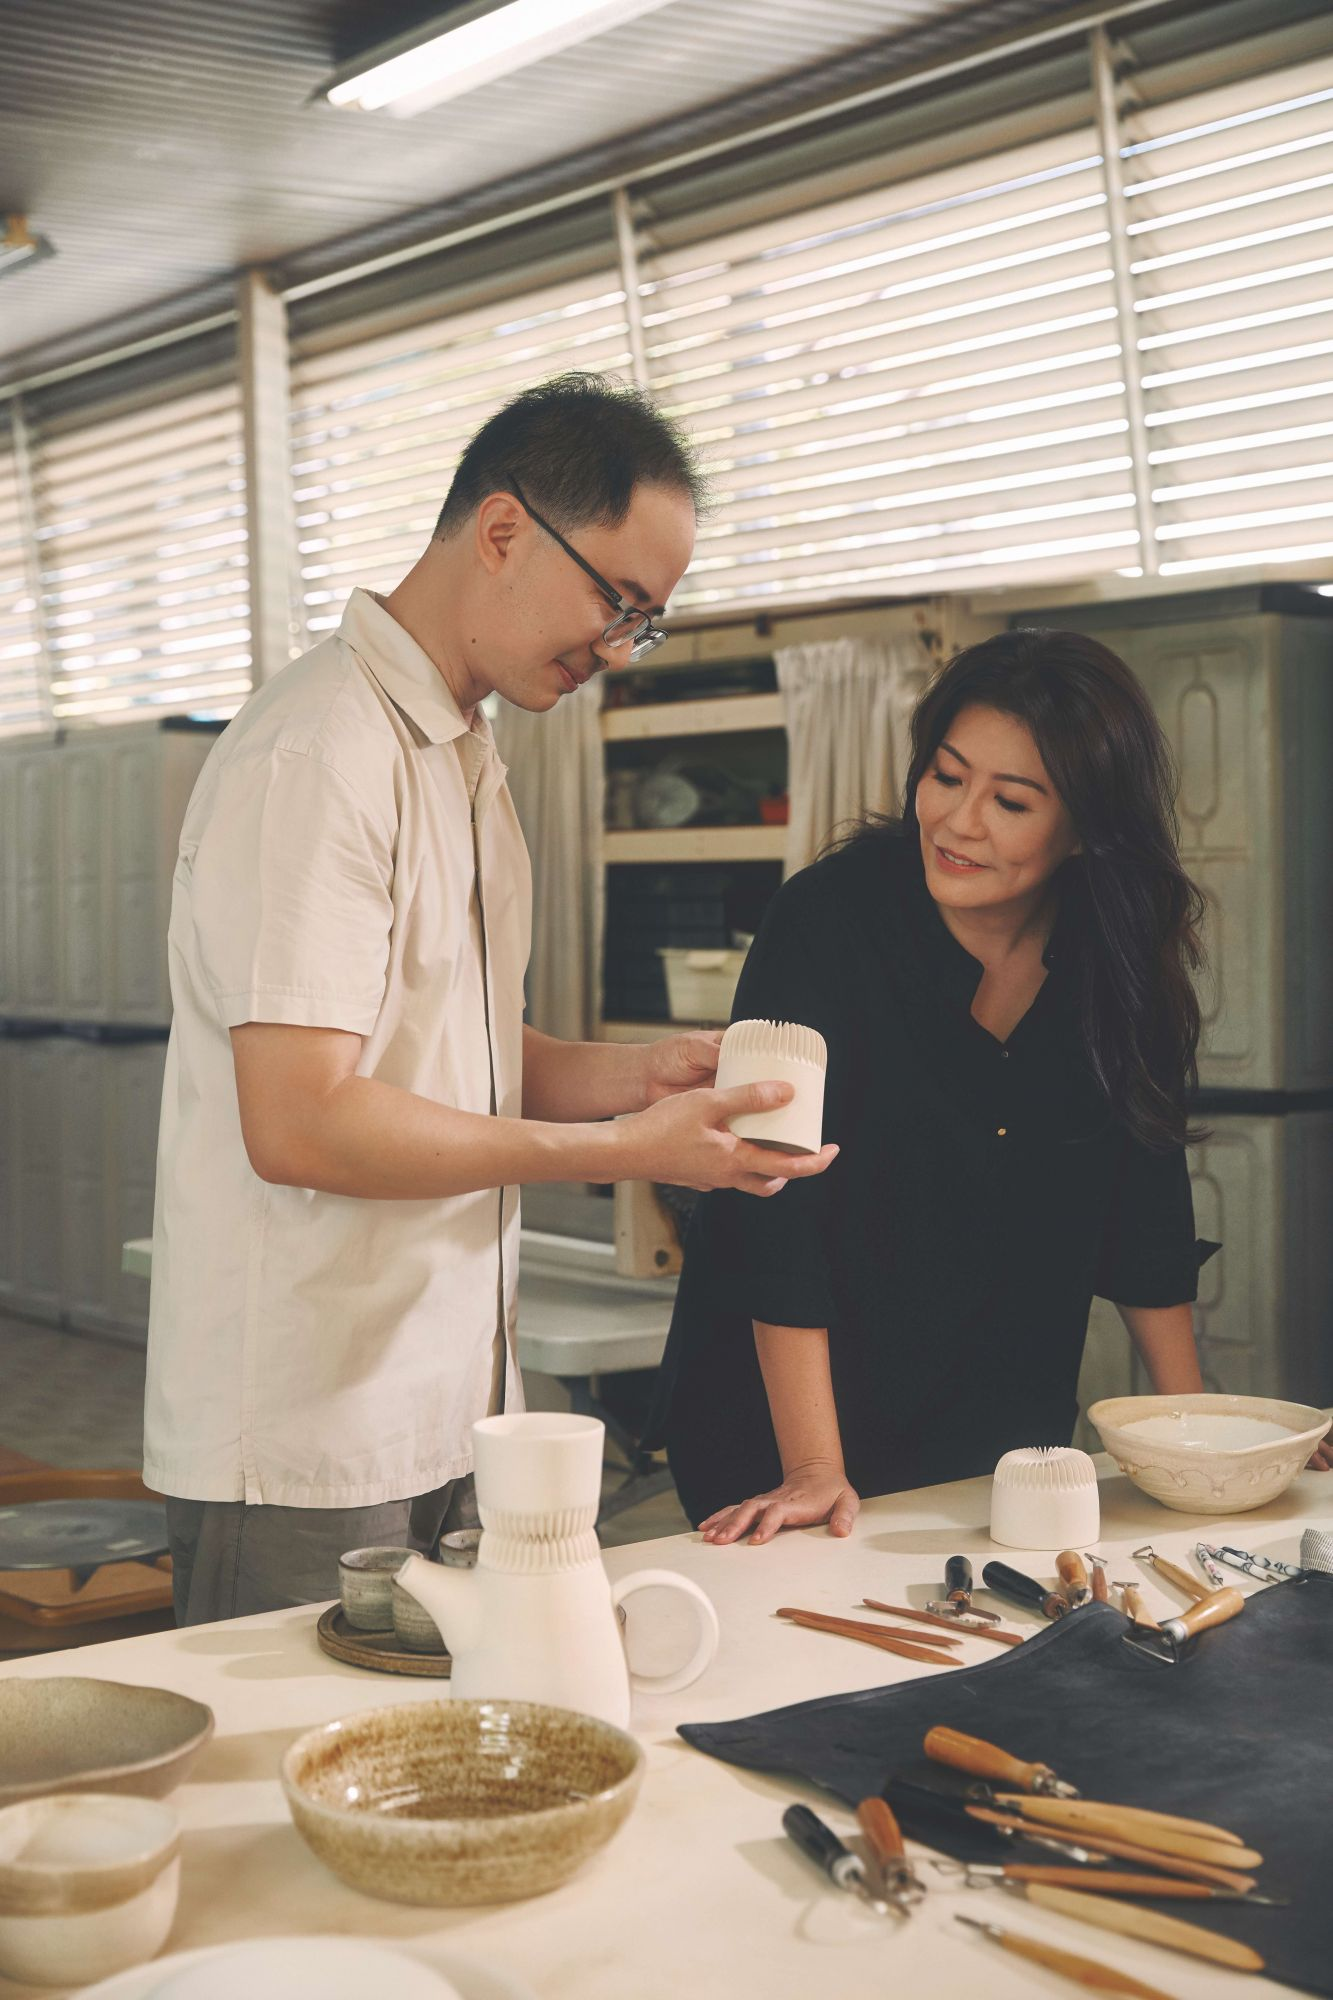 Singaporean Ceramicists Loh Lik Kian and Debbie Ng's Tableware Serves as Canvases For a Chef's Plating